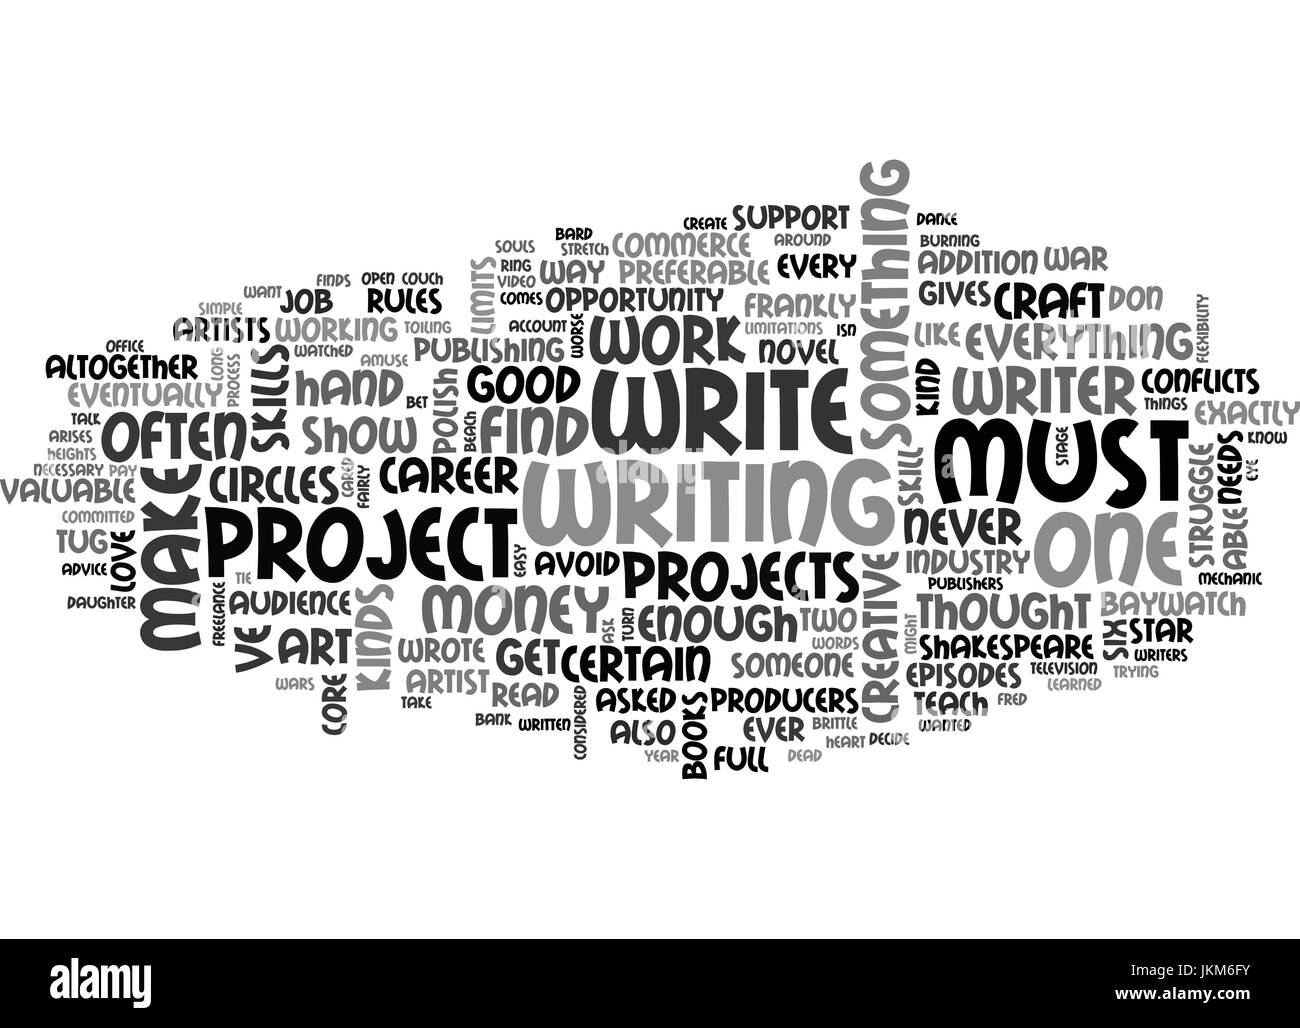 IT WAS A DARK AND STORMY NIGHT Text Background Word Cloud Concept - Stock Vector